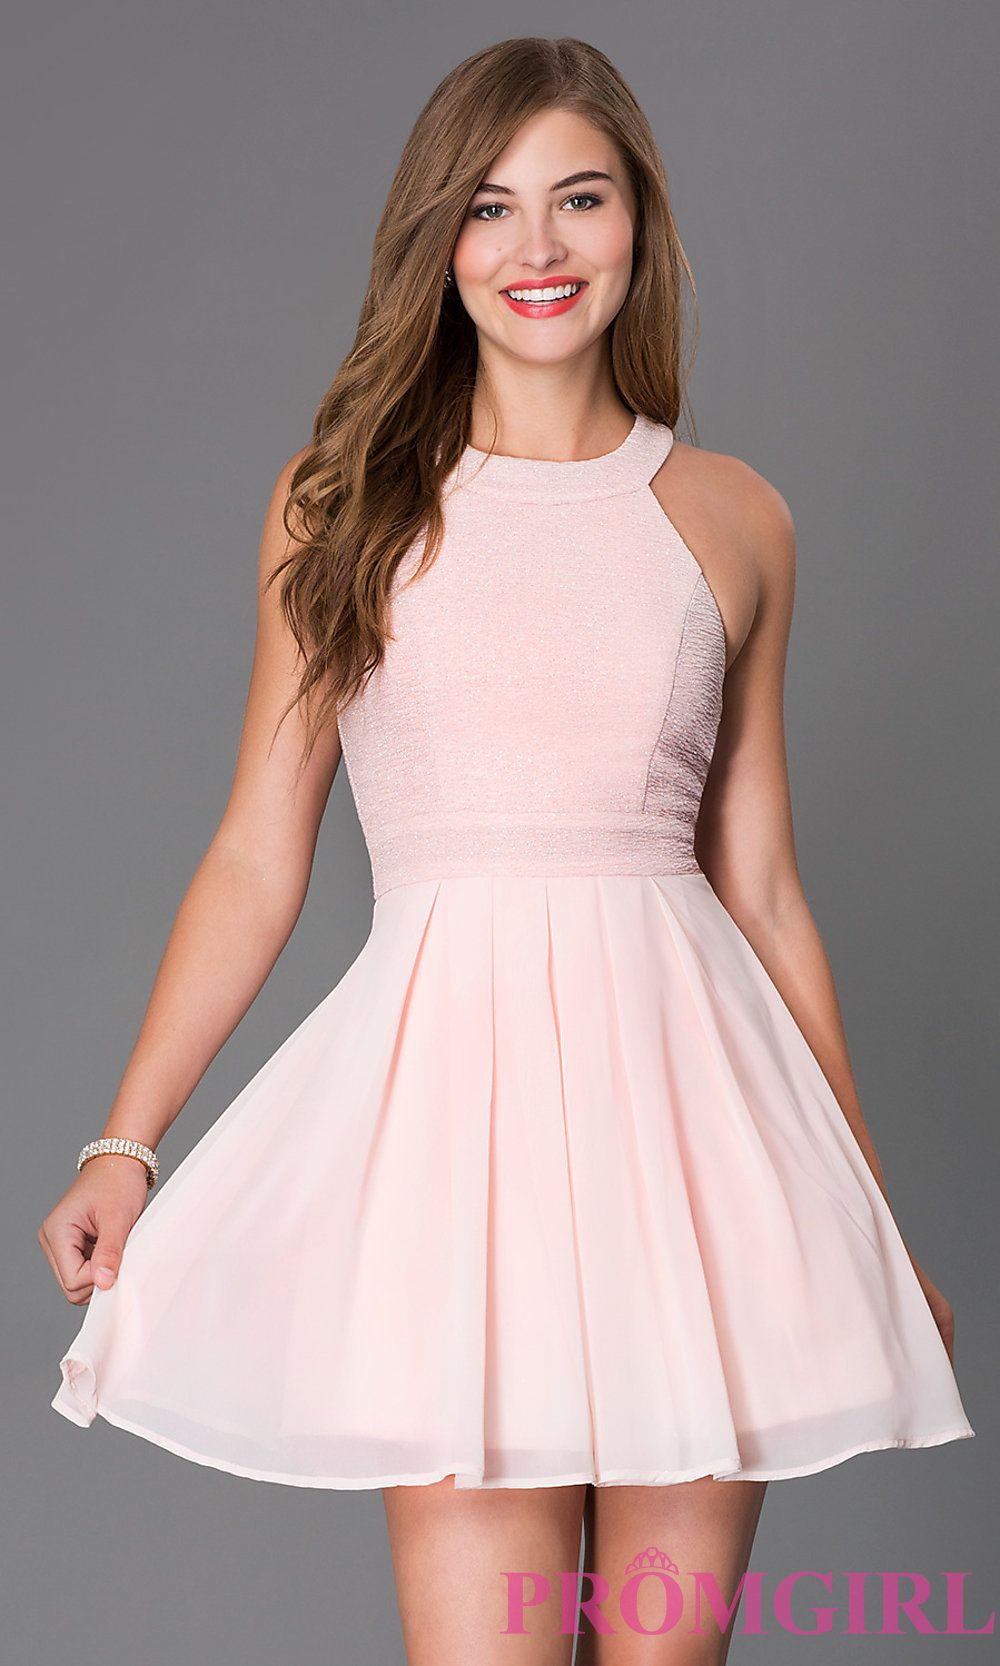 Pink Short Sleeveless Fit-and-Flare Party Dress | Bat mitzvah ...